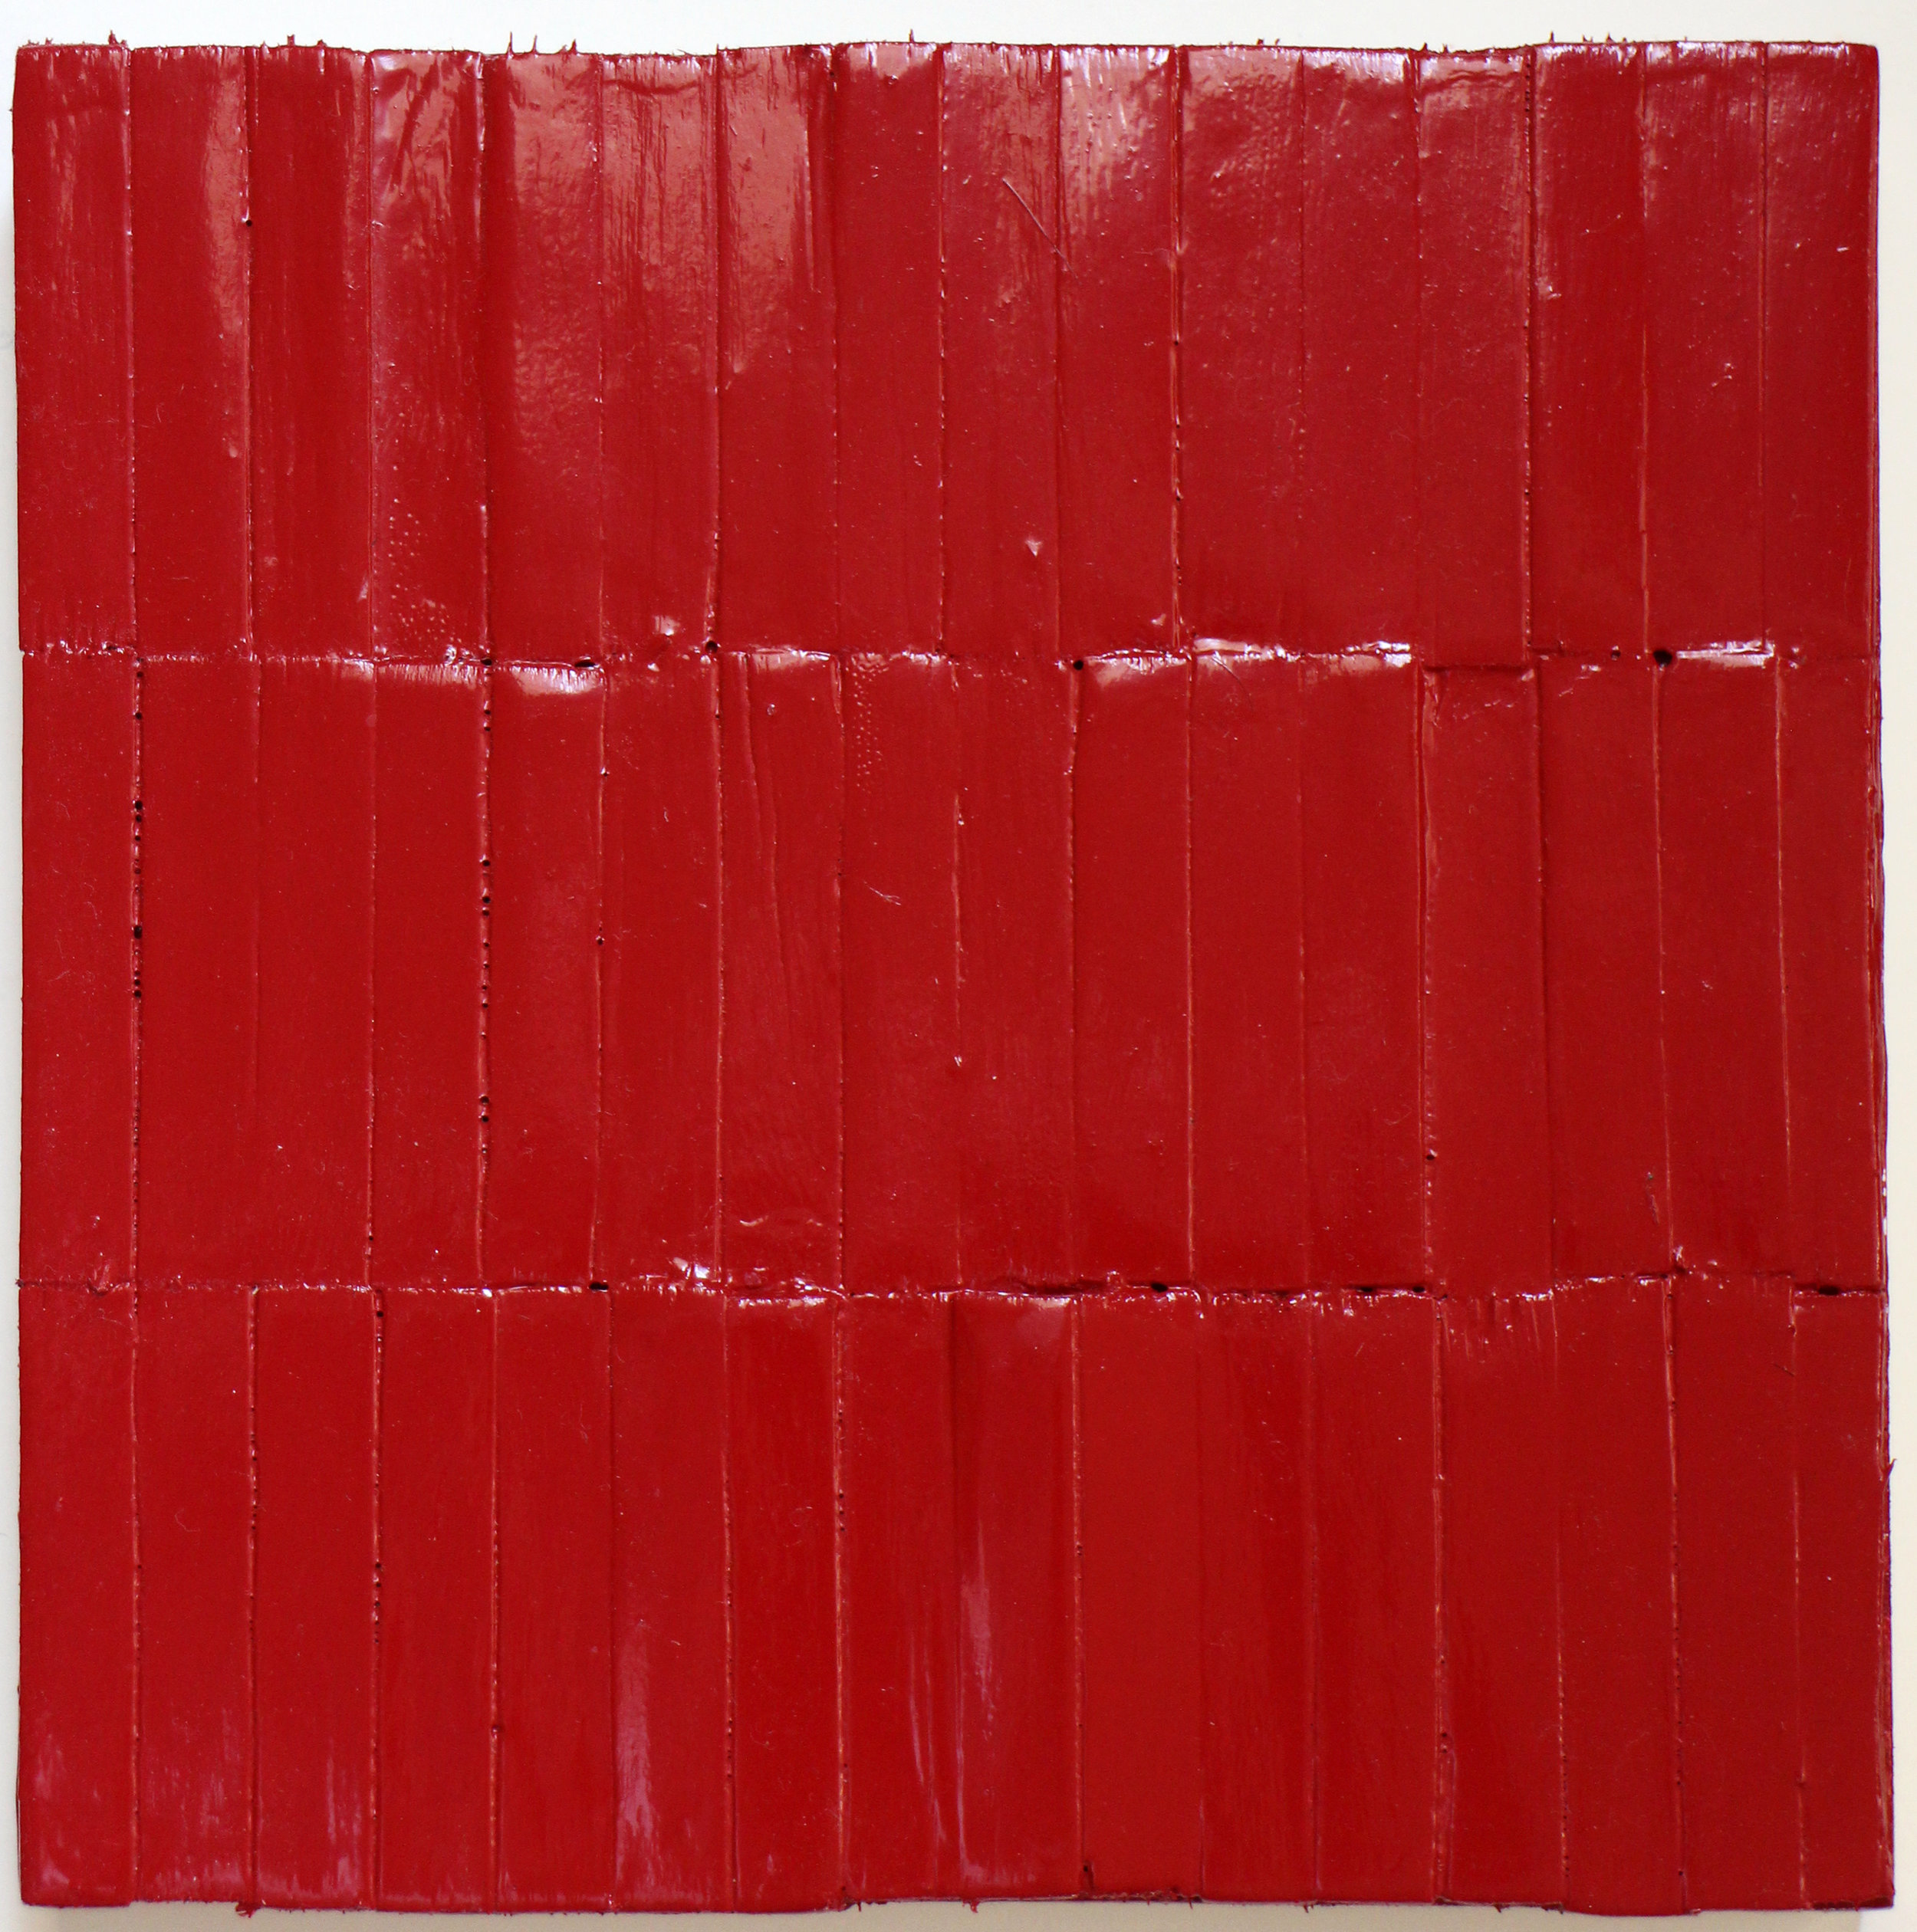 Red Painting 2